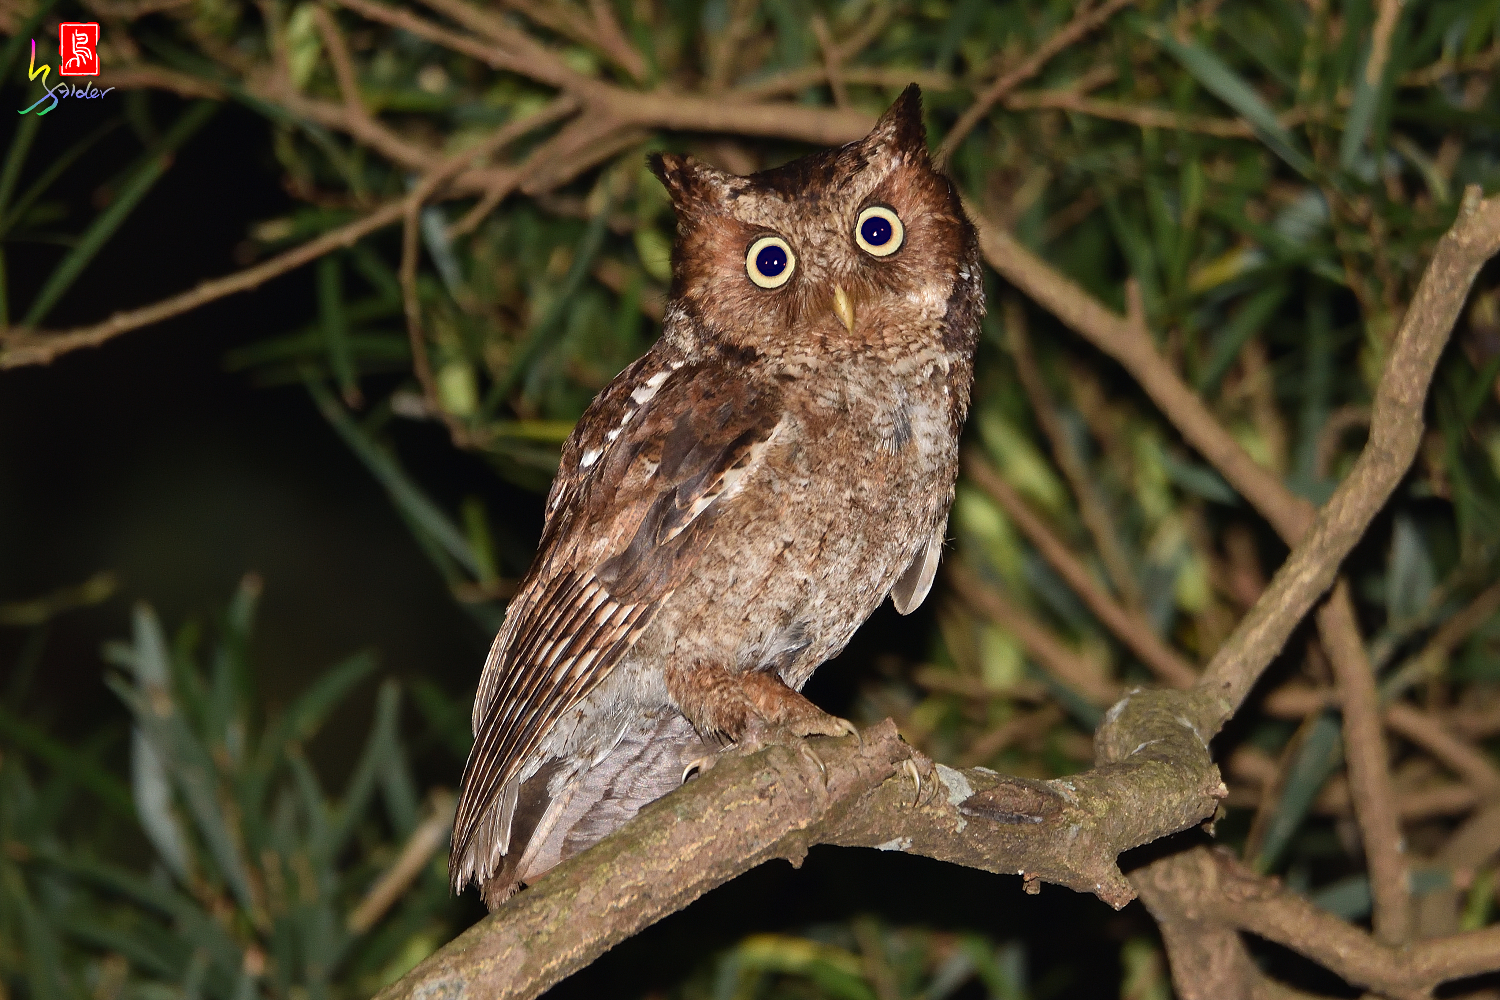 Moutain_Scops_Owl_1462_Redeye